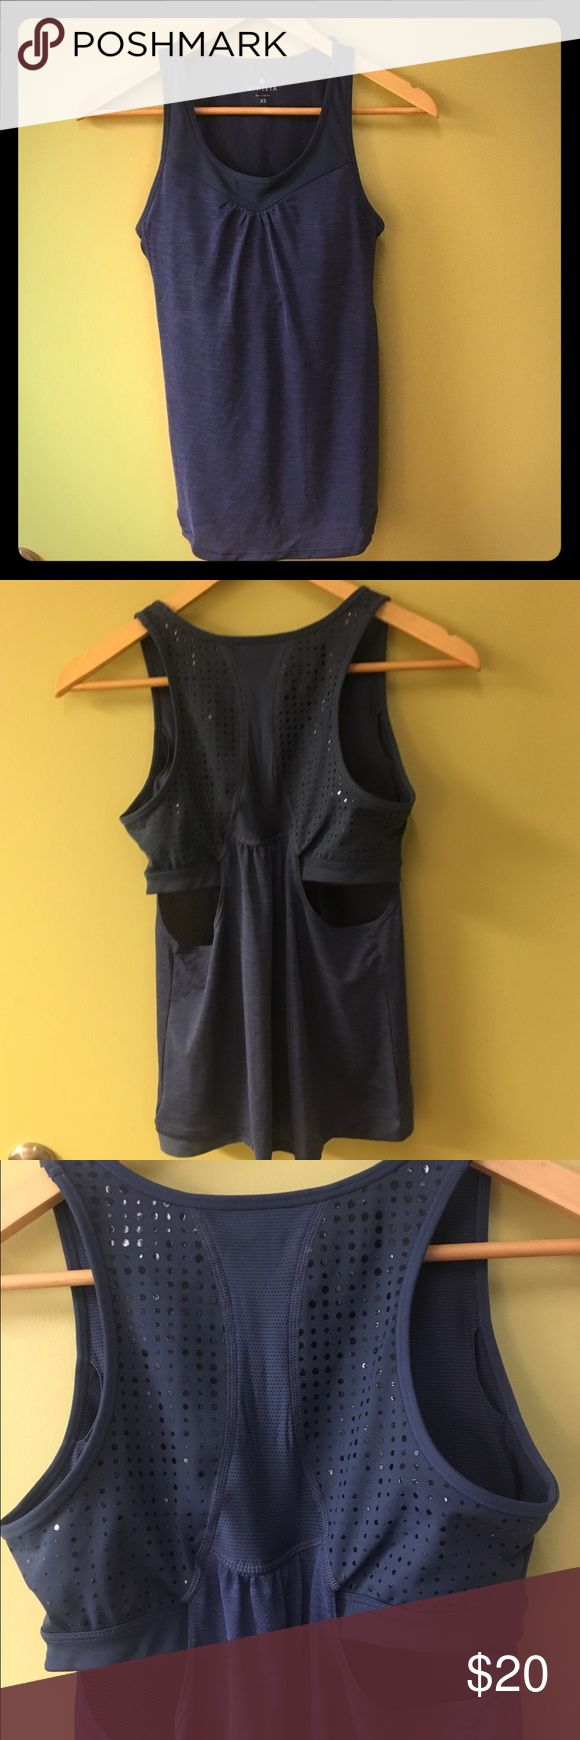 Athleta XS work out top. NWOT! NWOT! XS Slate blue Athleta work put top built in bra, with side cut out for ventilation. Never worn. Great quality breathable material, outer shell has tiny holes for cooling effect. True Athleta performance style! Athleta Tops Tank Tops